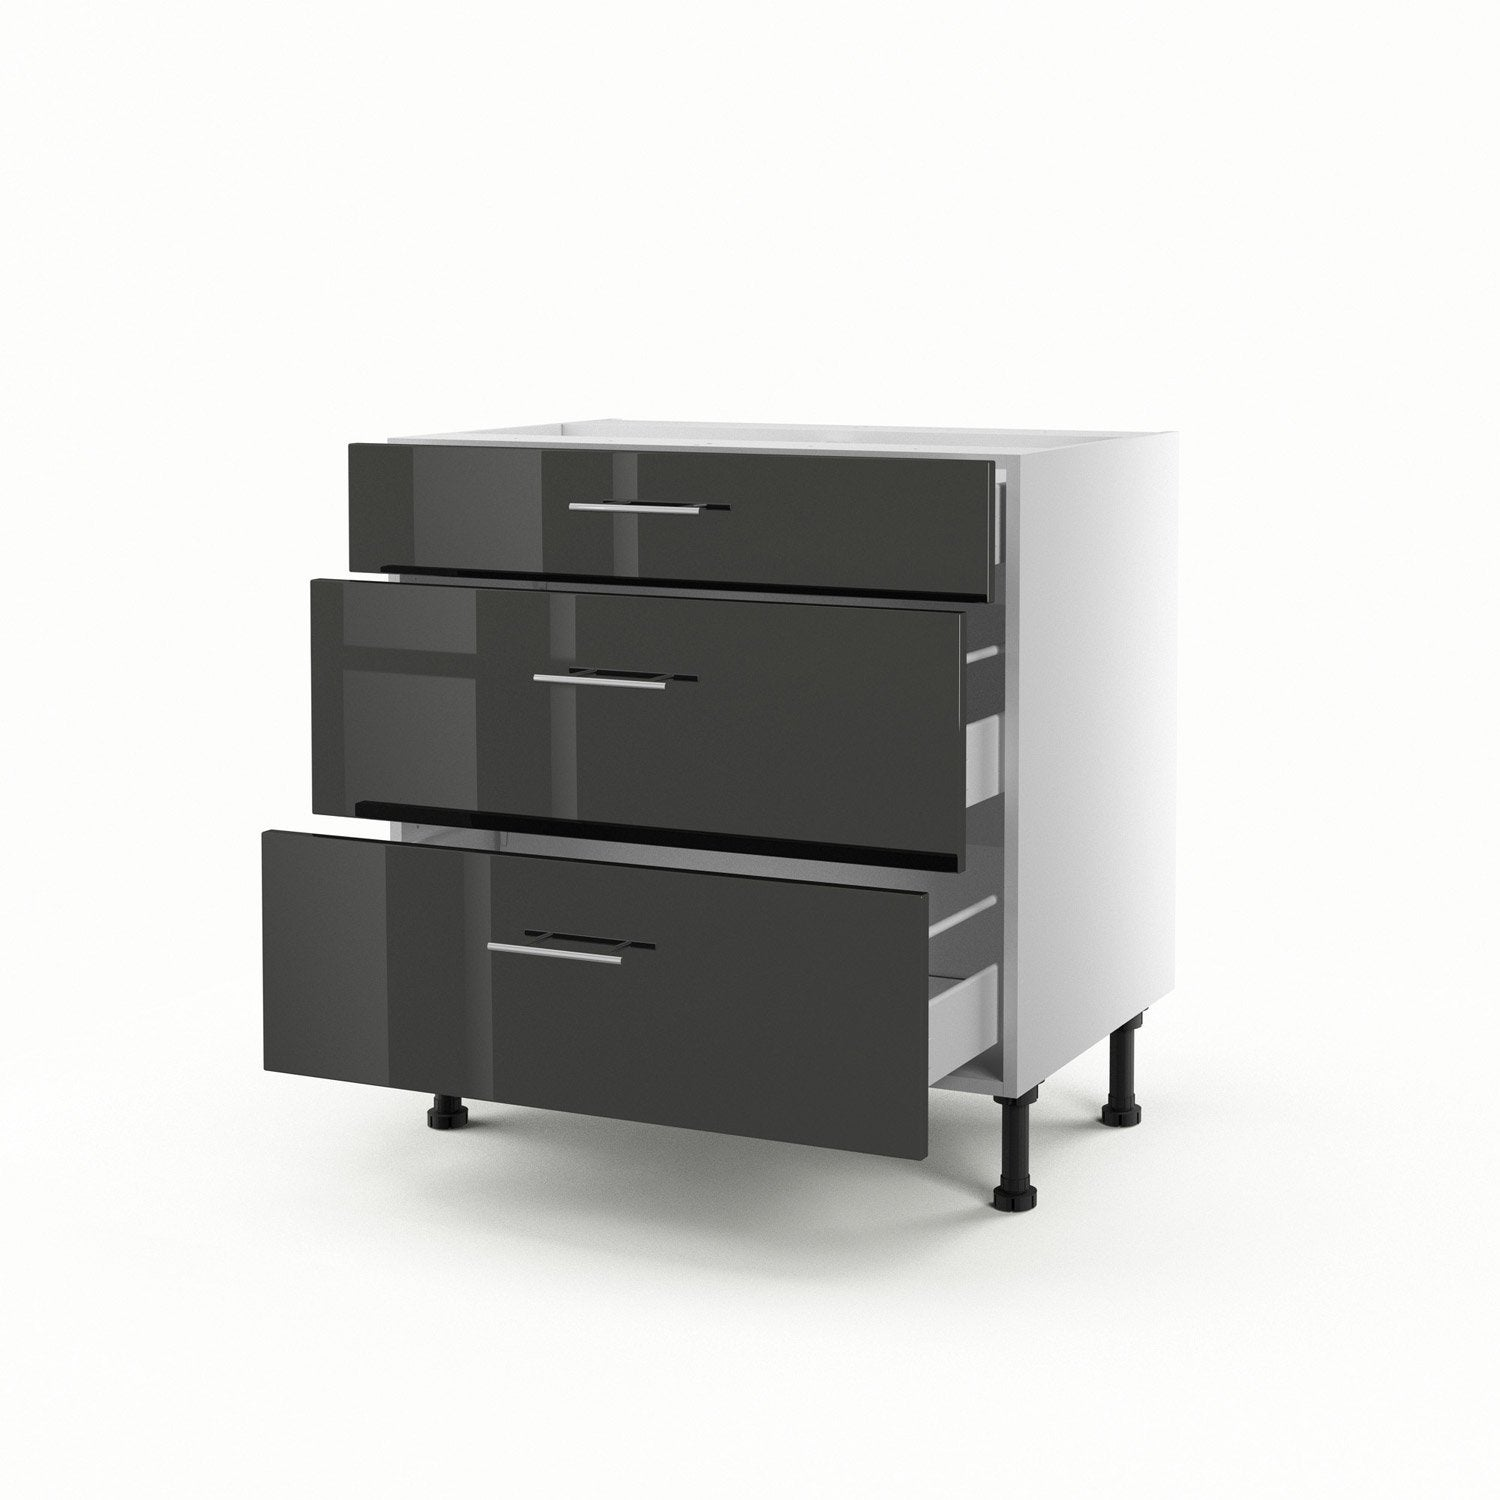 meuble de cuisine bas gris 3 tiroirs rio h70xl80xp56 cm. Black Bedroom Furniture Sets. Home Design Ideas